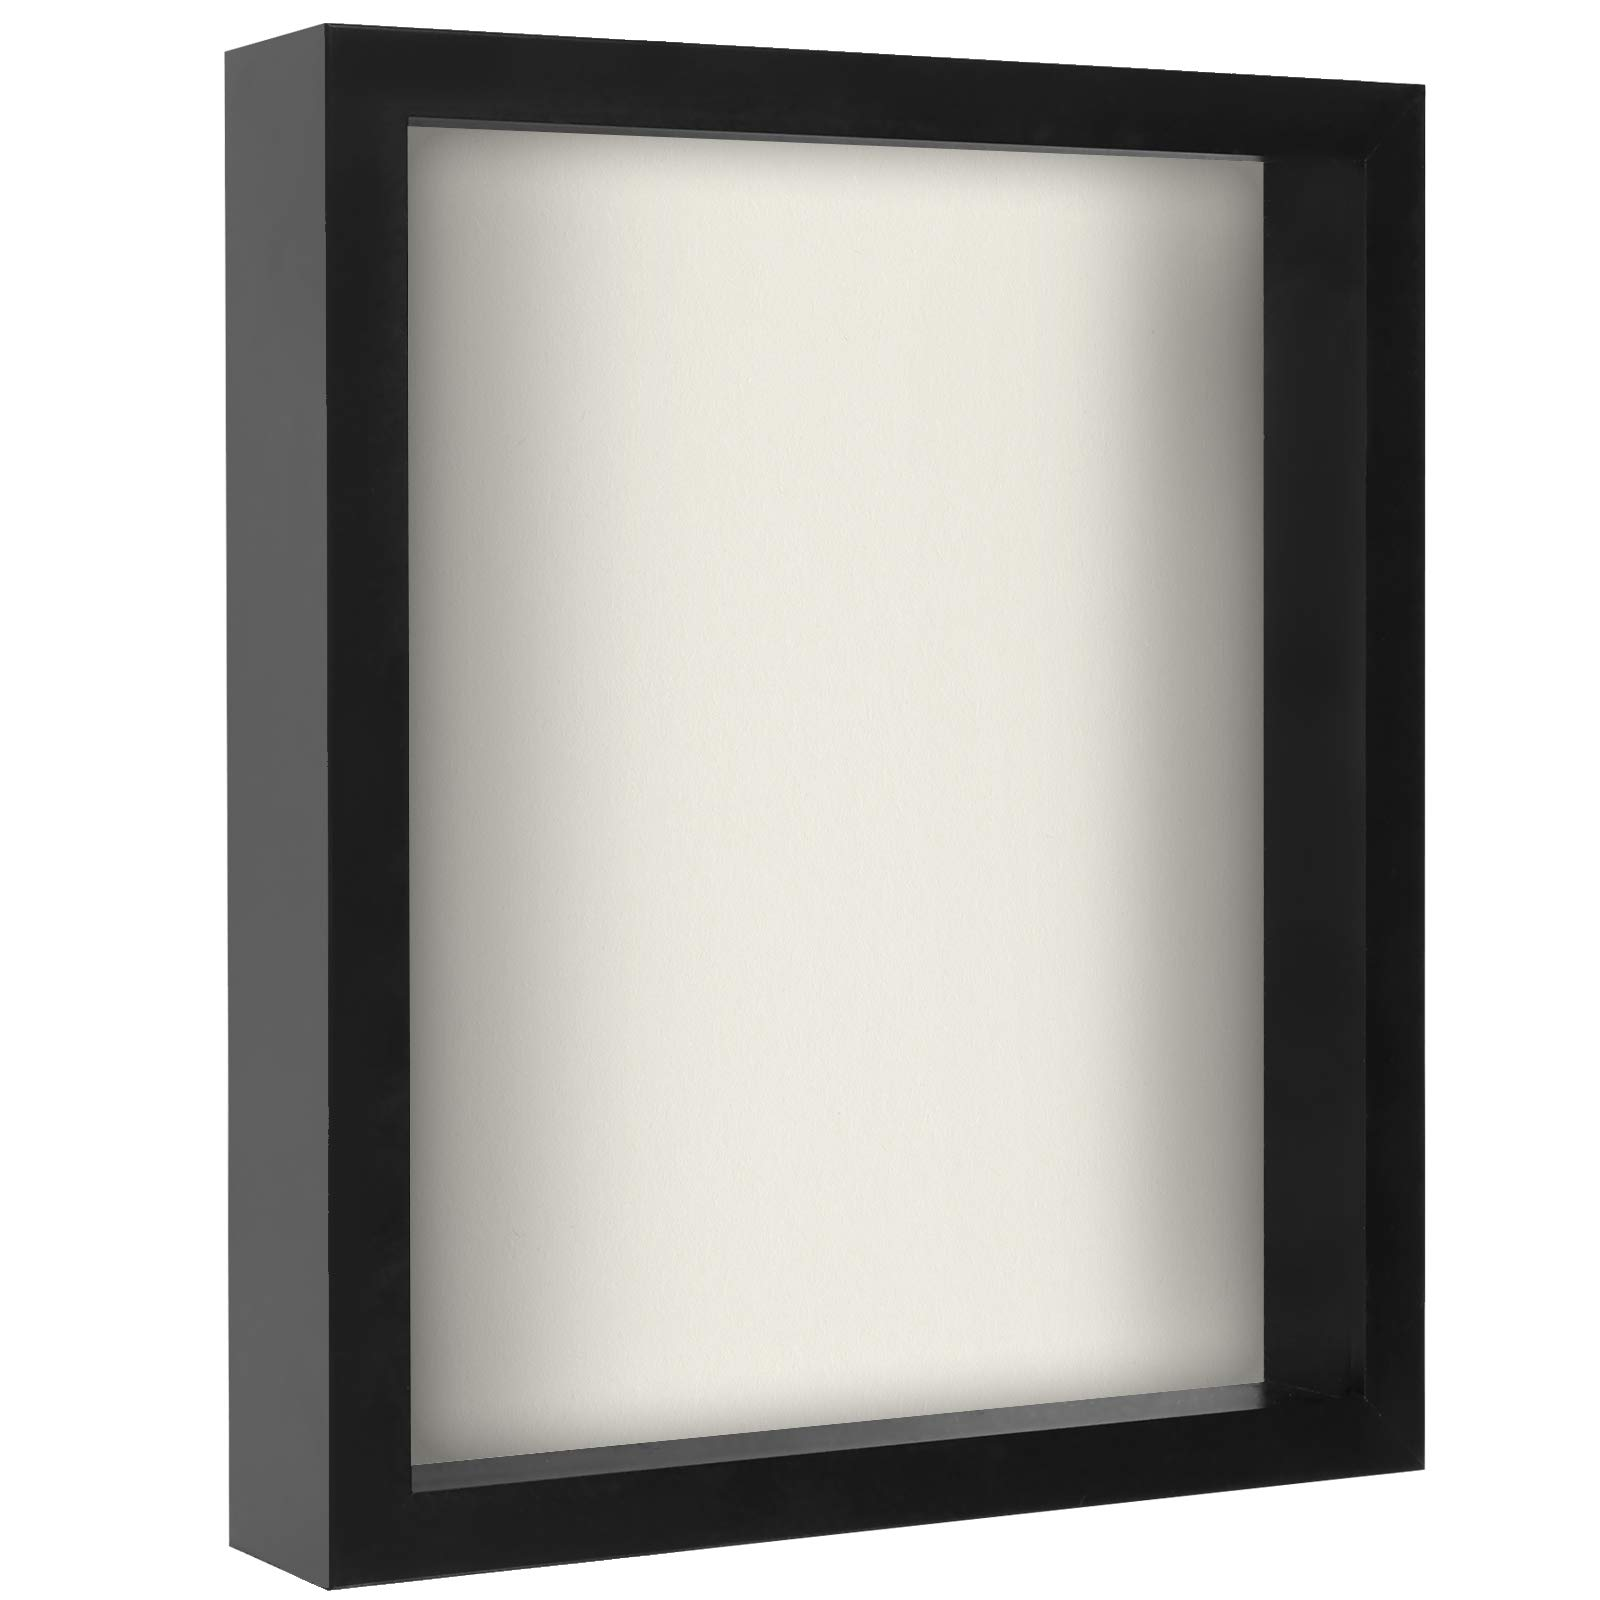 Americanflat 11x14 Shadow Box Frame, Black by Americanflat